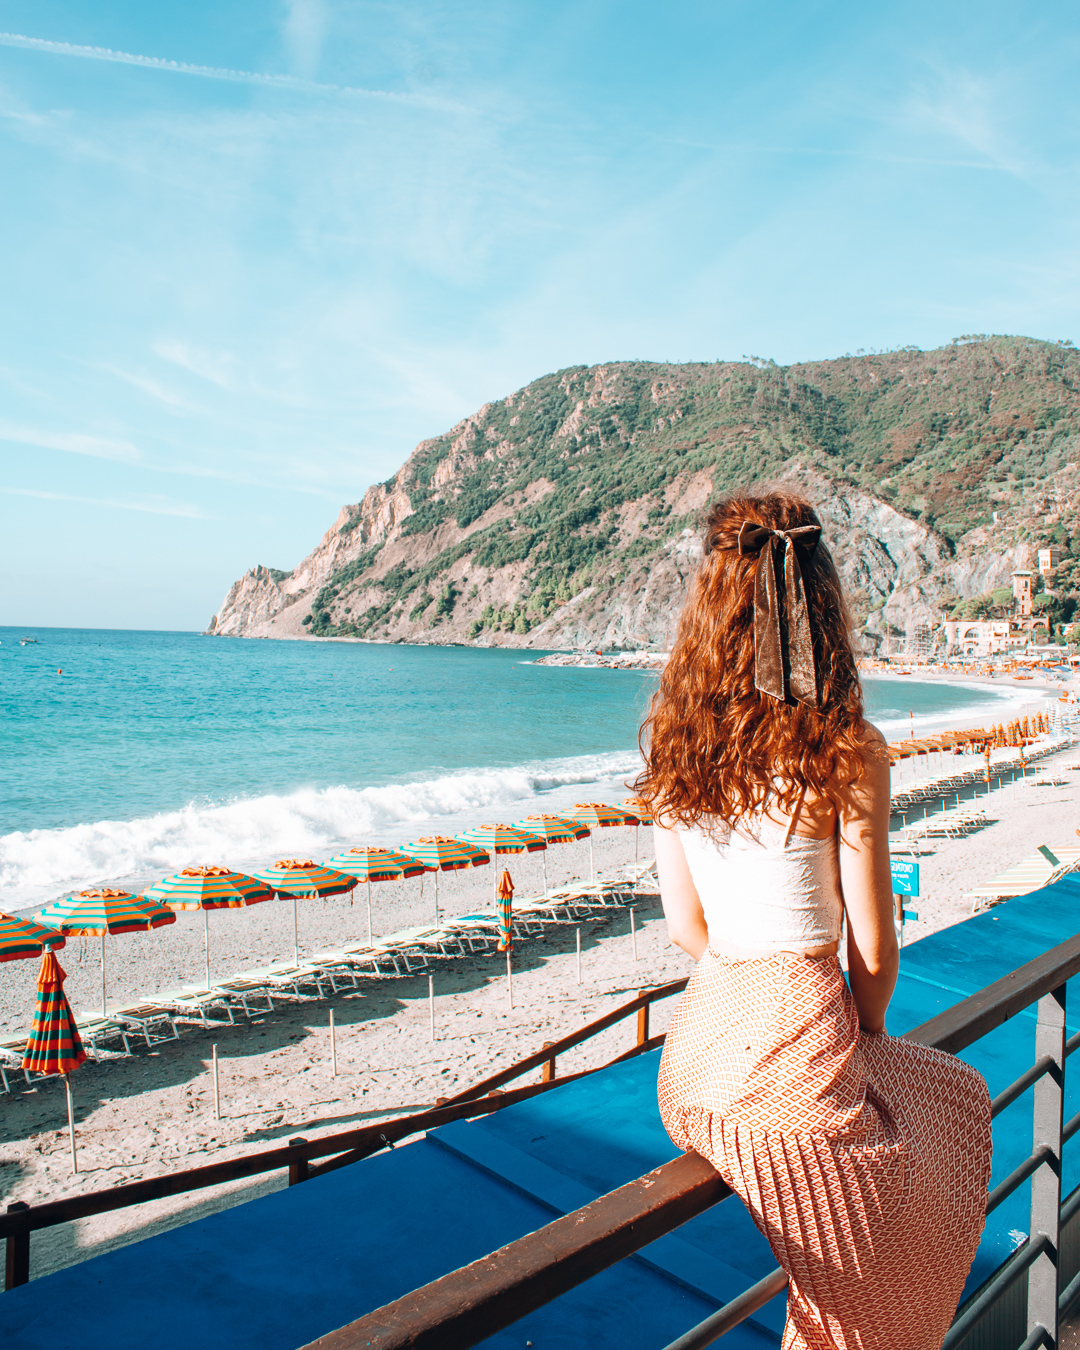 Overlooking Eden Beach in Monterosso al Mare